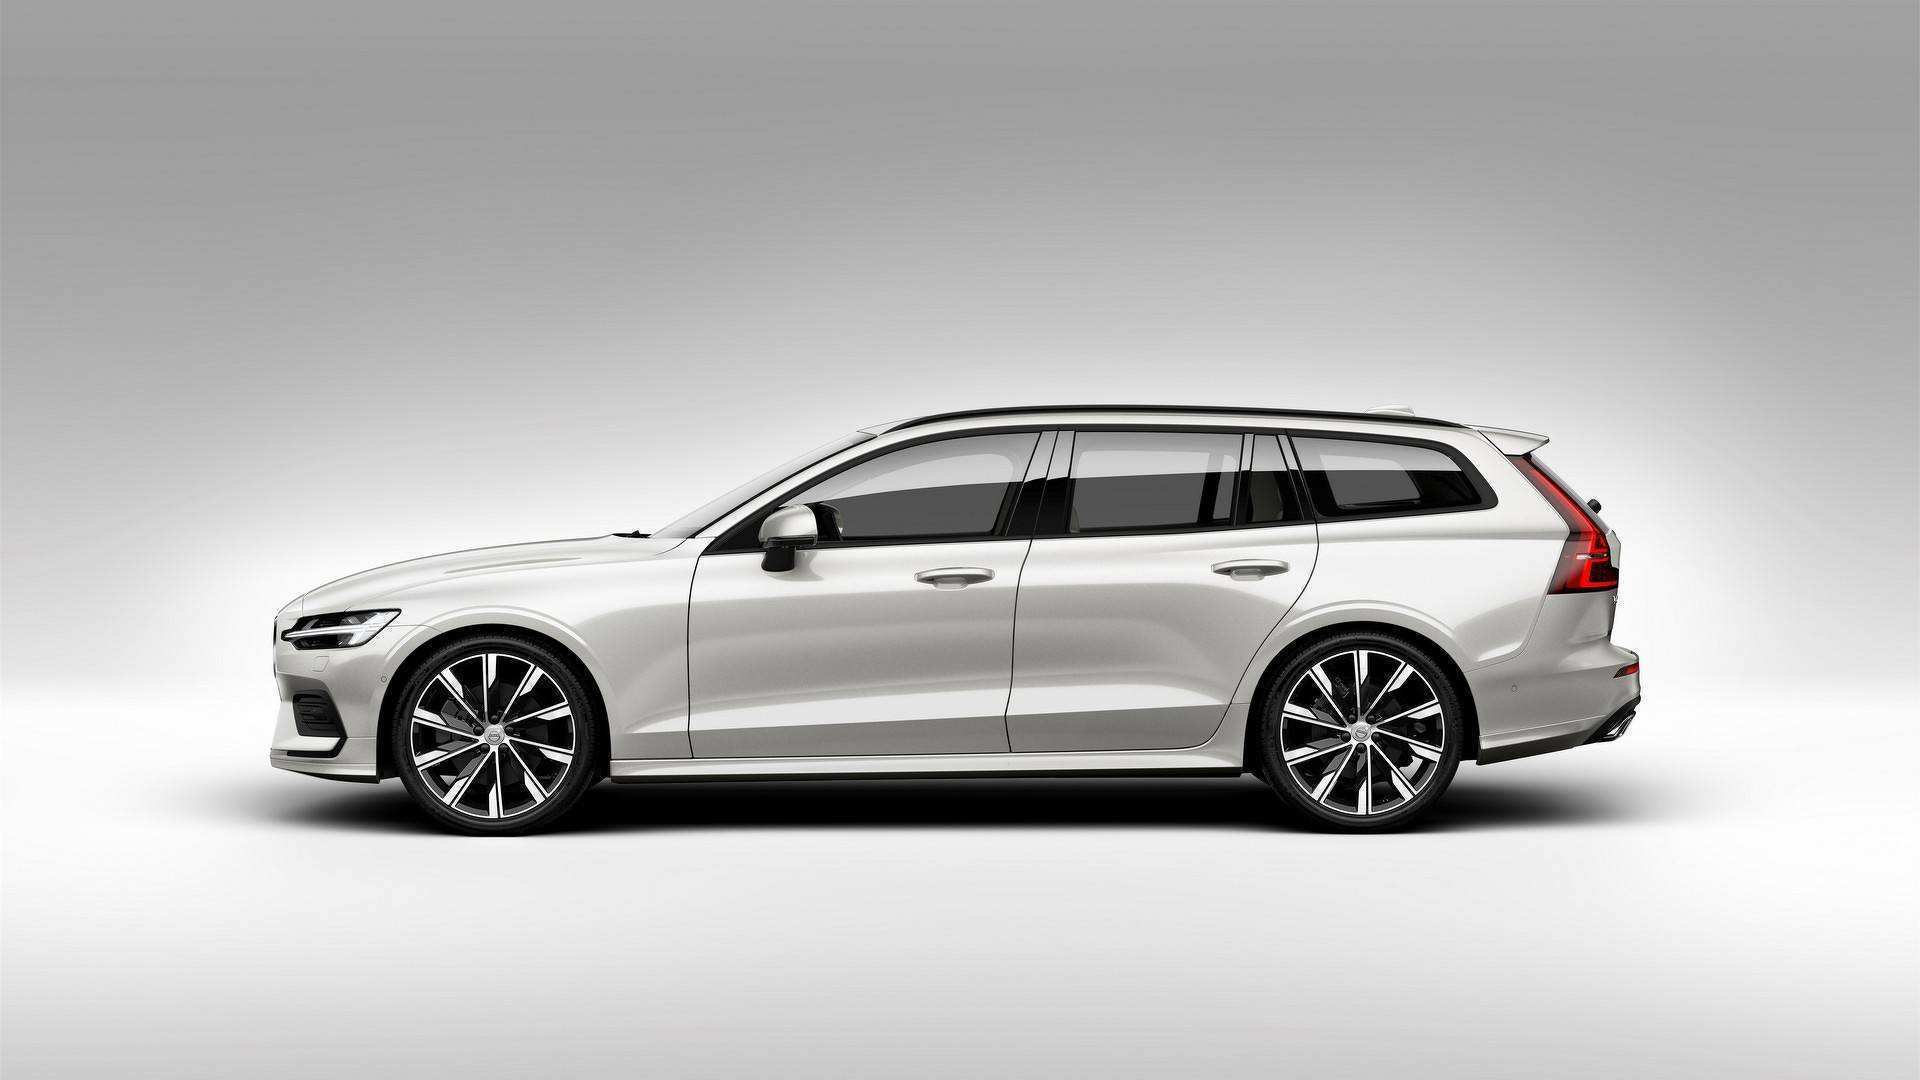 64 All New 2019 Volvo Station Wagon Style